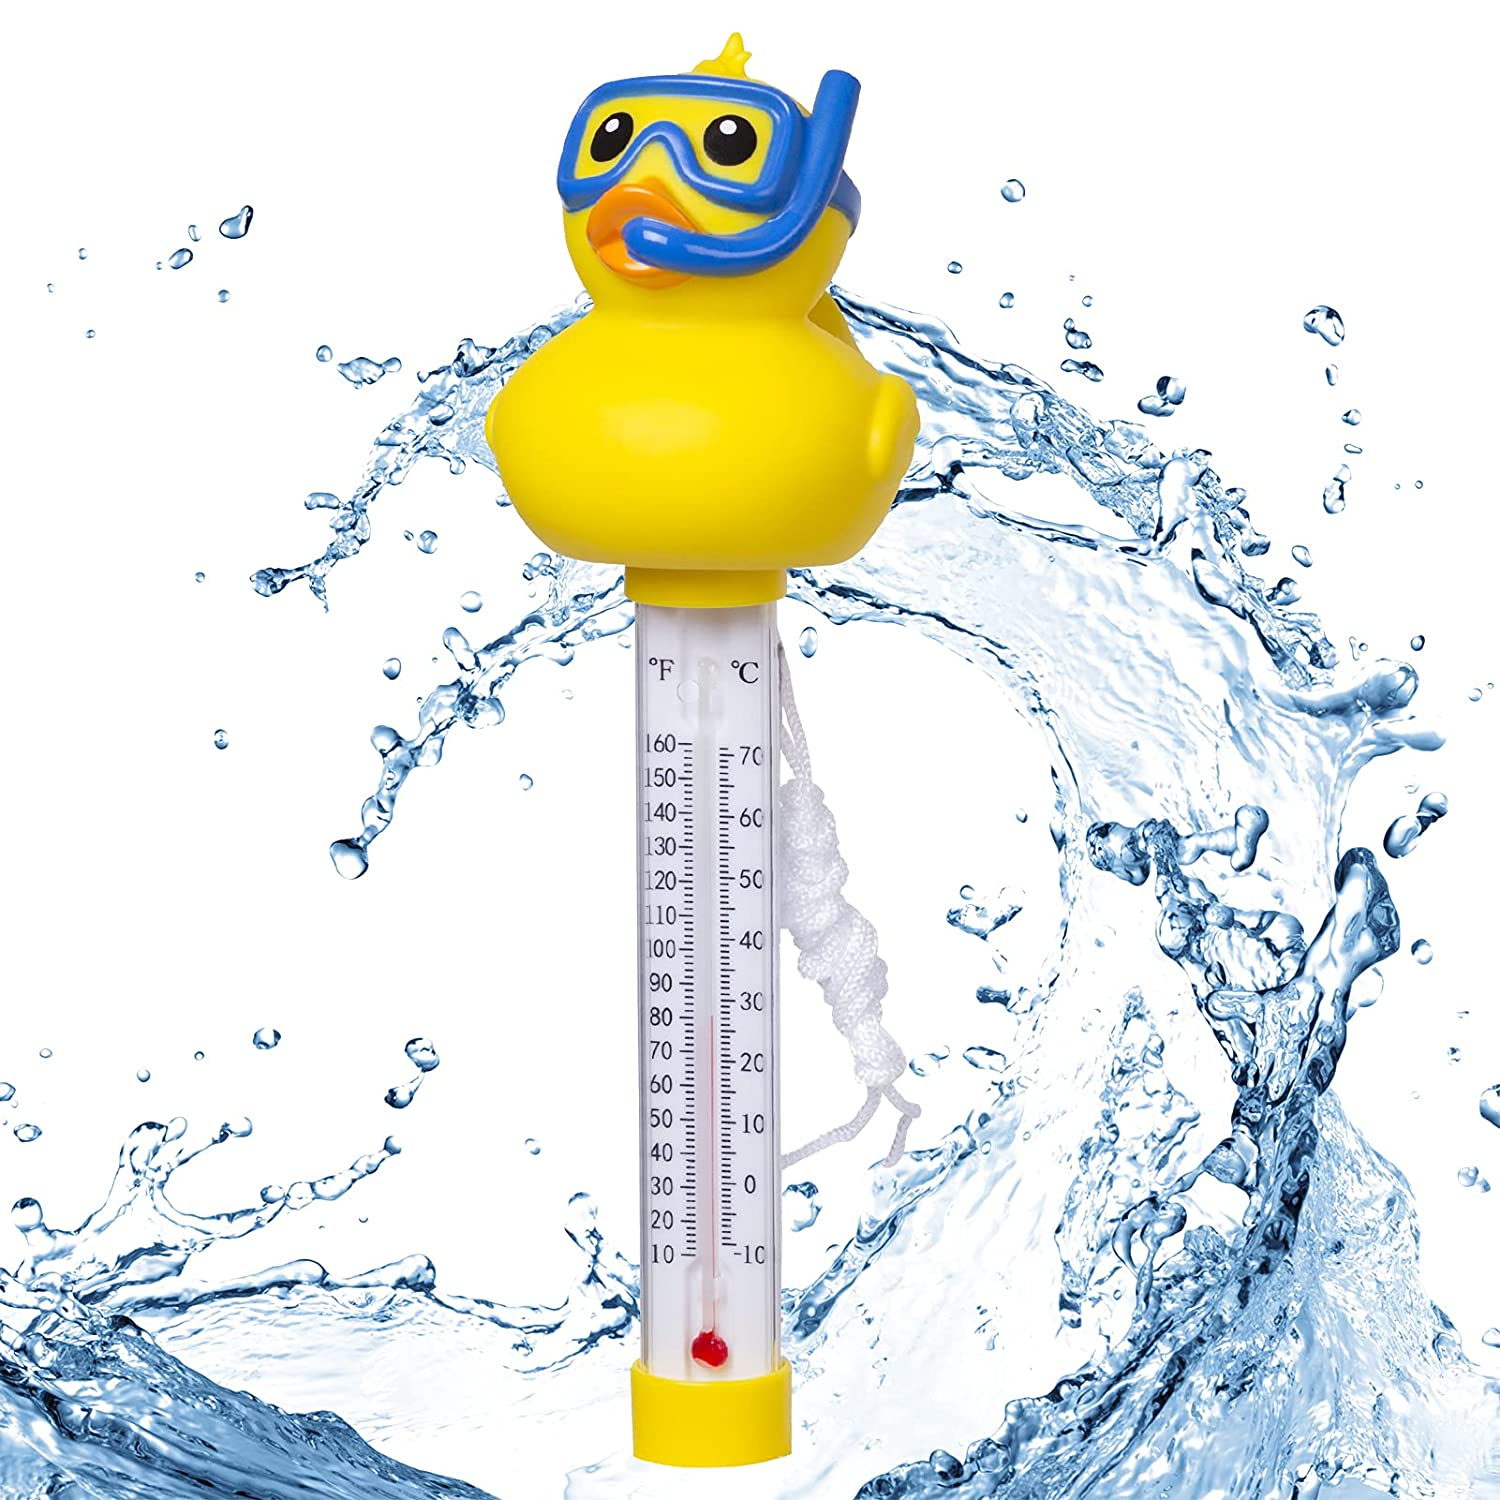 Doli Yearning Swimming Pool Thermometer Floating Easy Read Pond Water Thermometer with String  Shatter Resistant  for Outdoor & Indoor Swimming Pools, Spas, Hot Tubs  Classic Duck